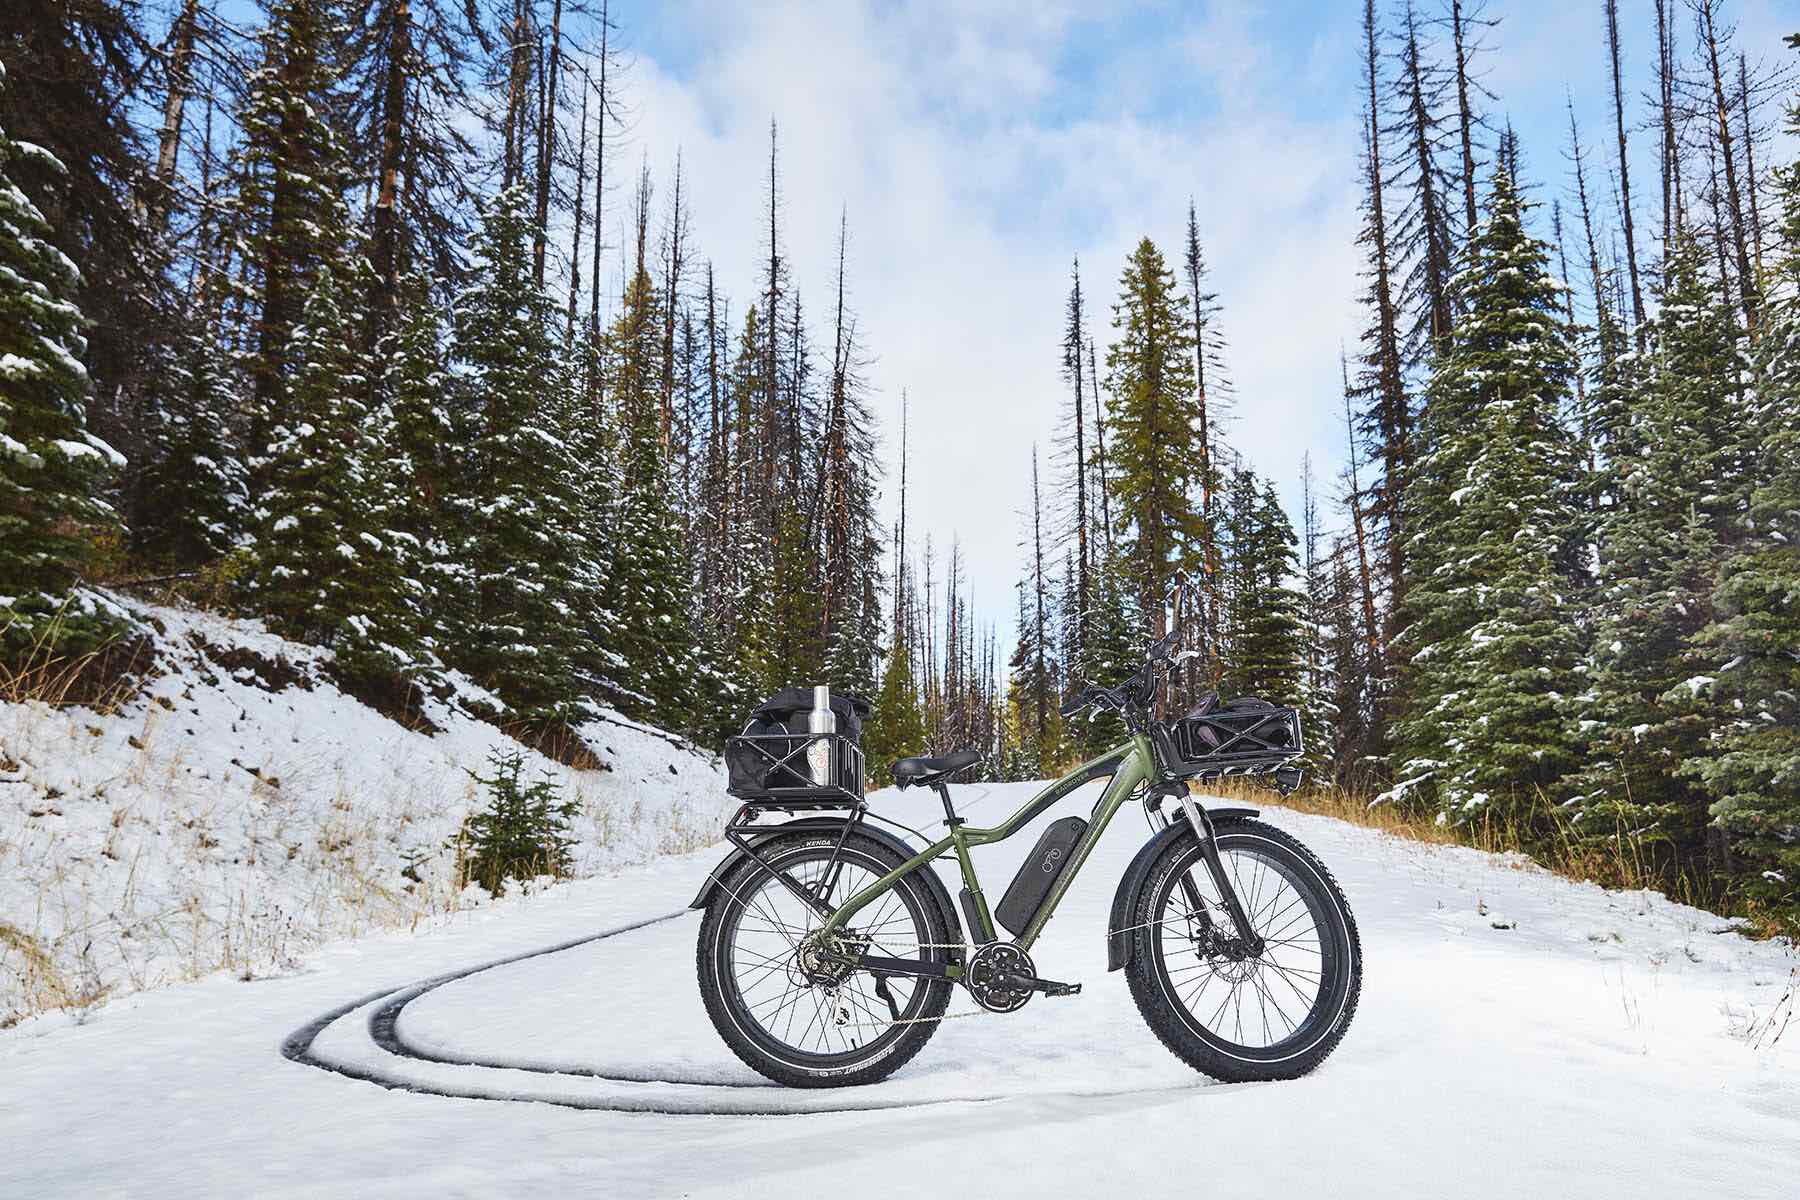 A RadRover electric fat tire bike on a snowy mountain.